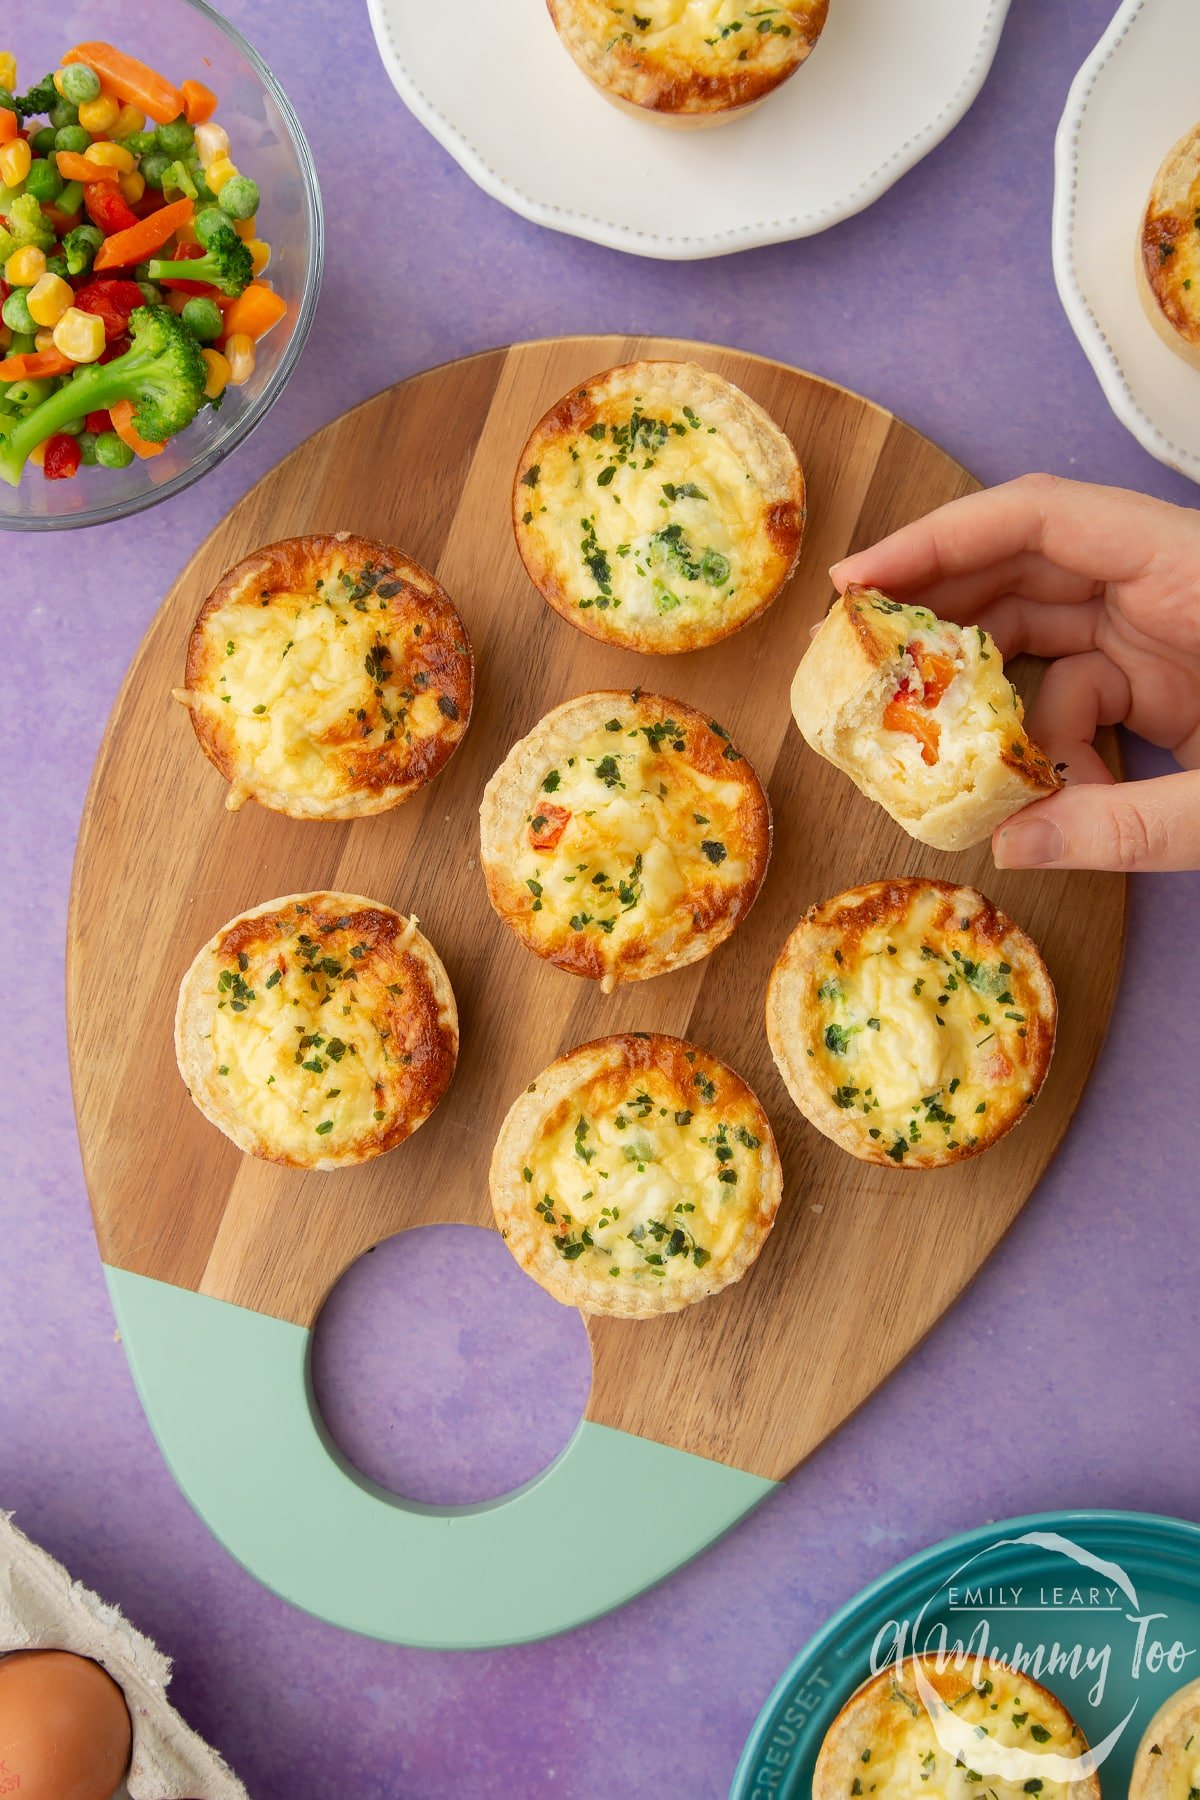 Mini vegetable quiches arranged on a wooden board. A hand holds ones with a bite taken out of it.